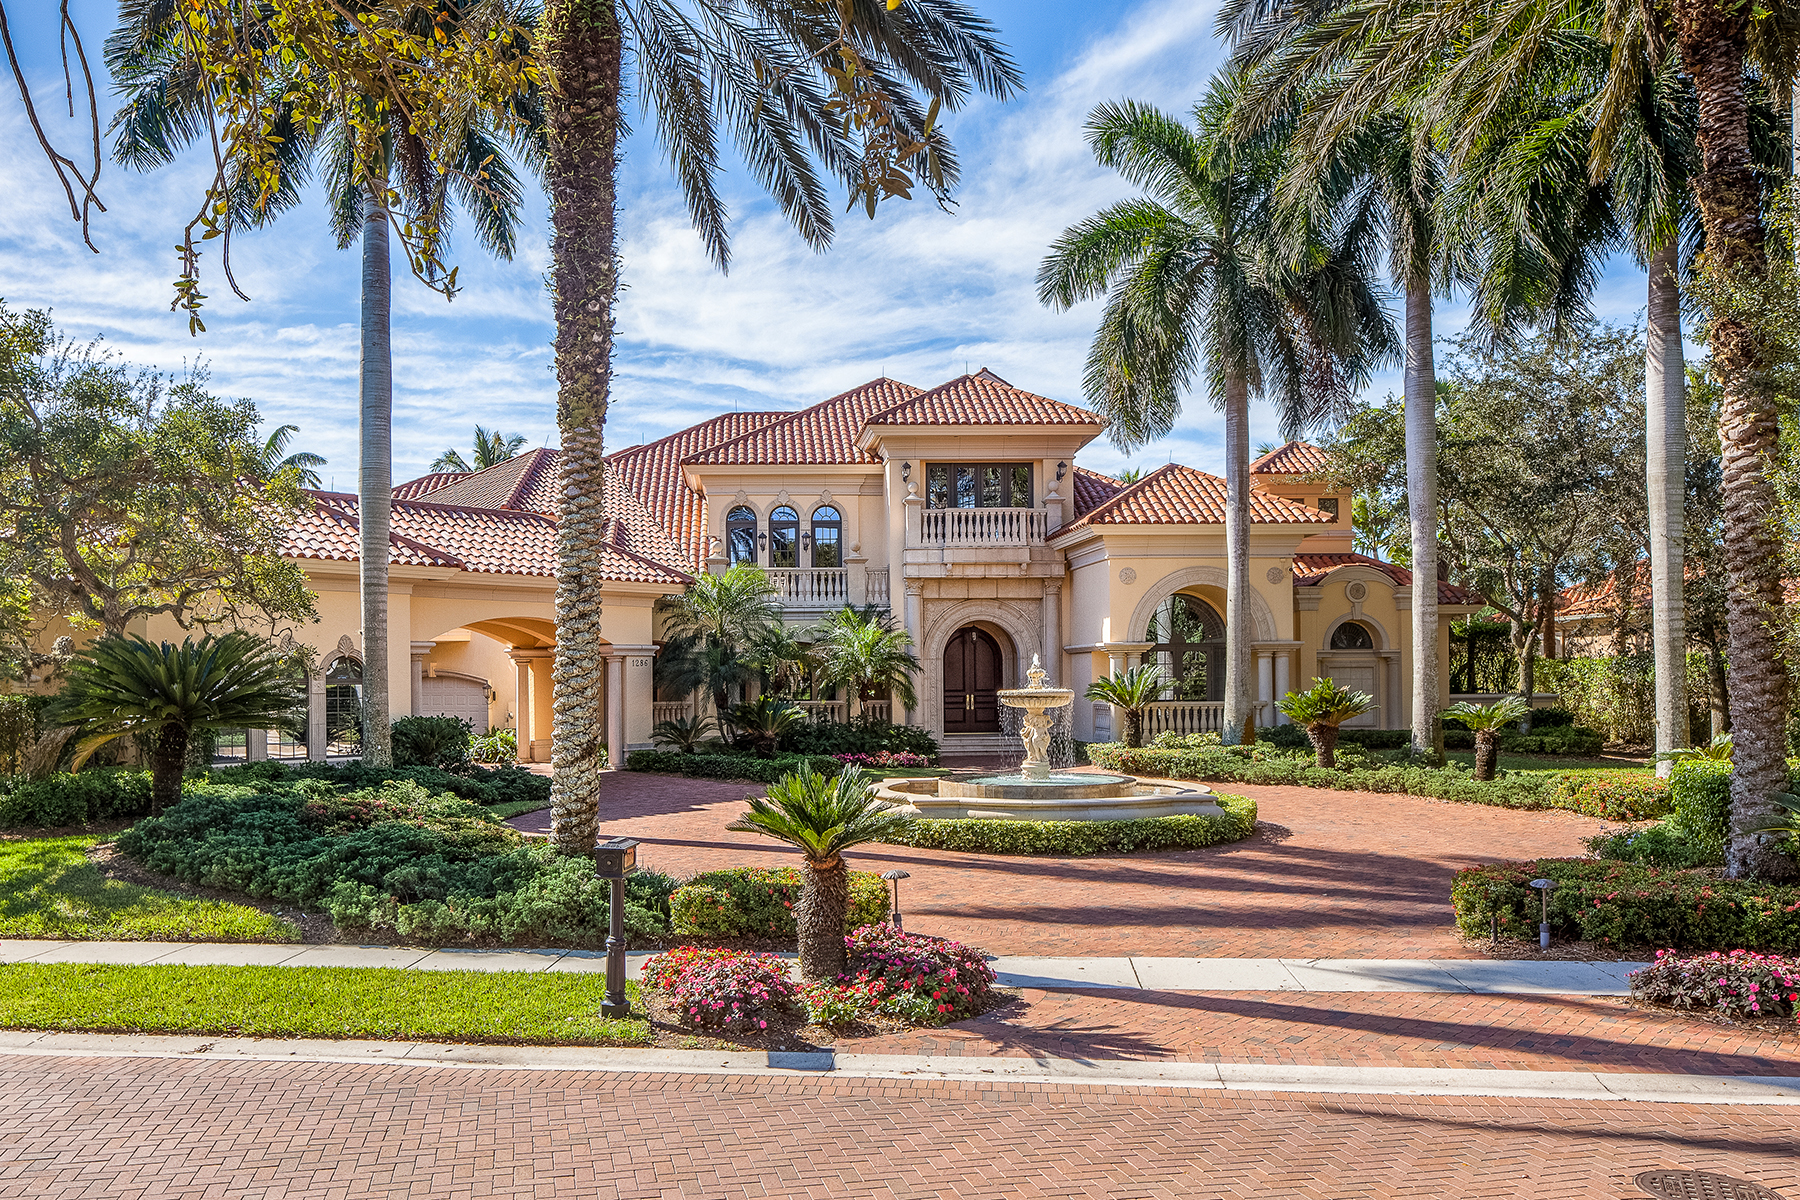 Casa para uma família para Venda às PELICAN MARSH - ESTATES AT BAY COLONY GOLF CLUB 1286 Waggle Way Naples, Florida, 34108 Estados Unidos